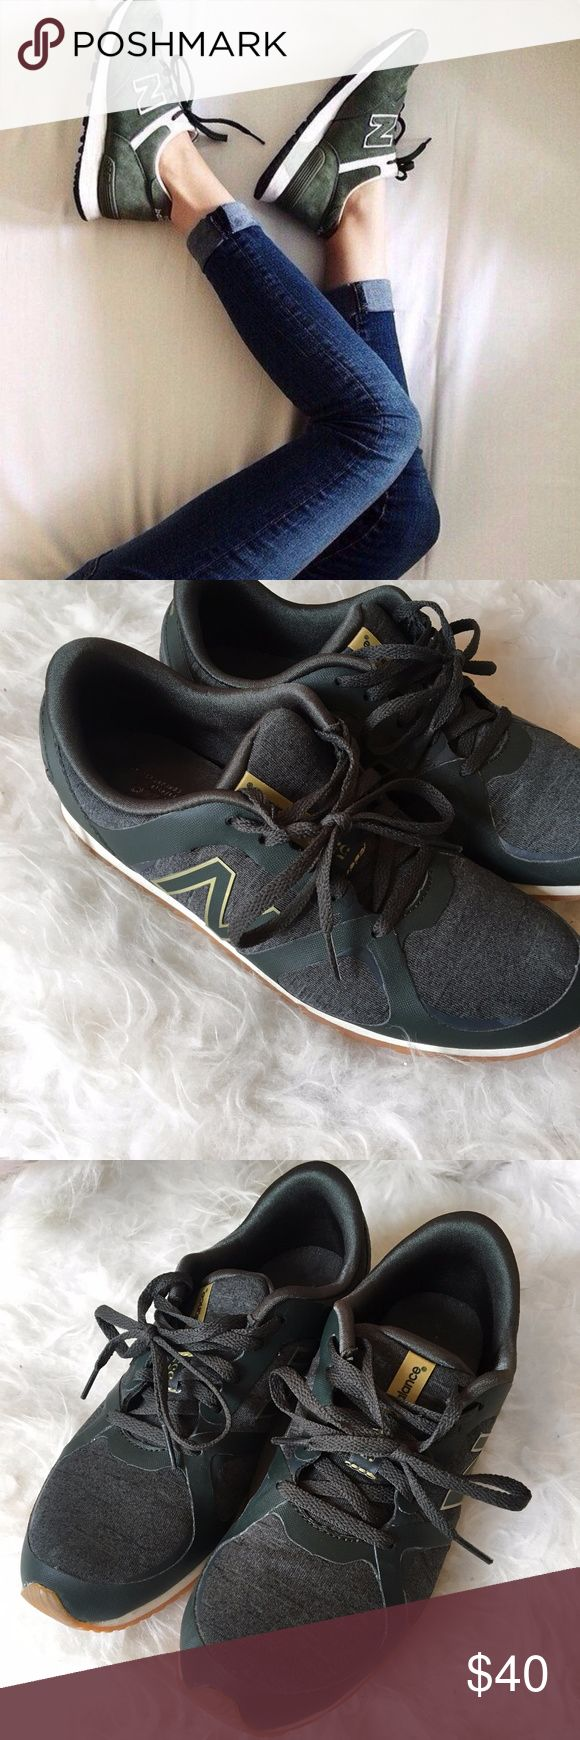 New Balance Hunter Green Sneakers These stylish New Balance hunter green sneakers are in great condition, only worn twice. They're very comfortable and they're a great color for fall! I usually wear a 7.5 and these shoes fir perfectly.  🚭 From a smoke-free home ❌ No trades or off PoshMark sales 🛍 Bundles welcome and encouraged 👌🏻 Reasonable offers welcome ⚡️ Same/next day shipping 🌬 All items are steamed before shipping New Balance Shoes Sneakers